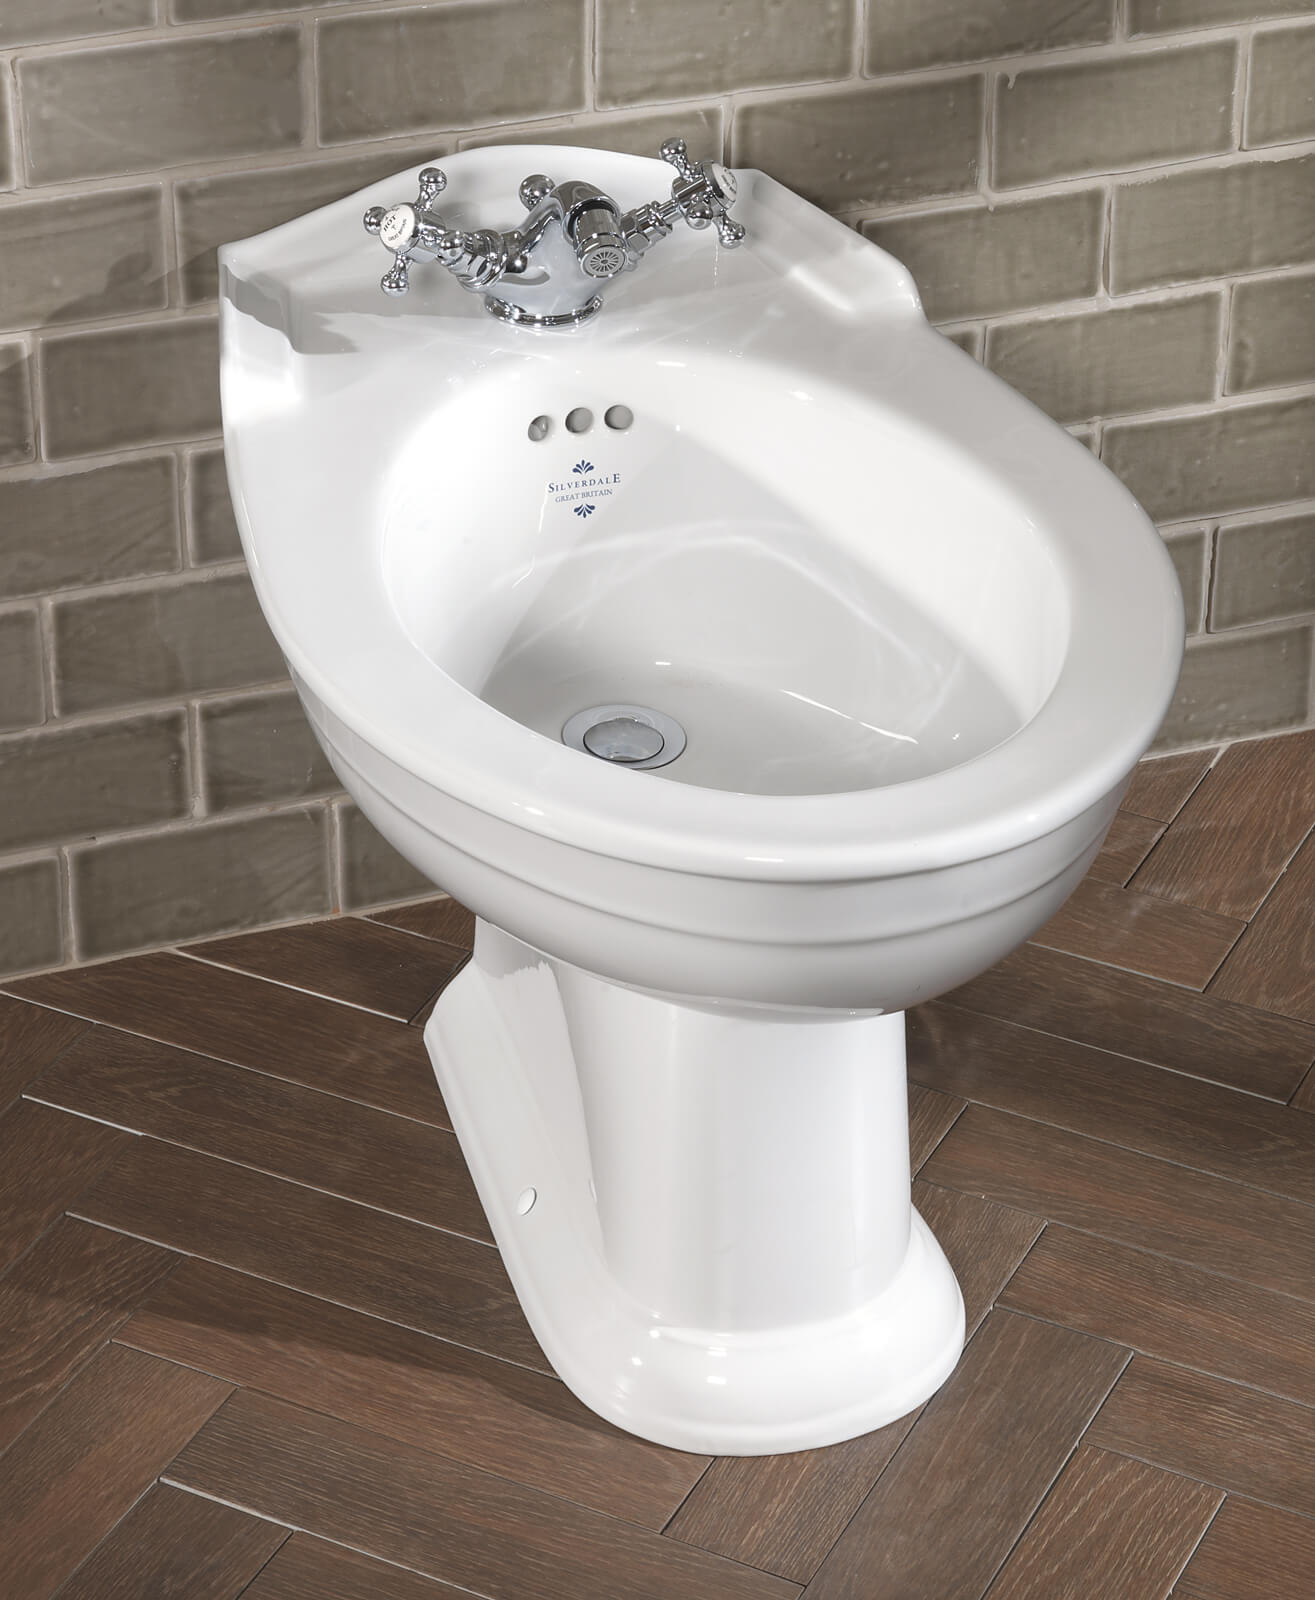 brondell bathroom from hh pictures customers customer bidet swash real photo seat gallery